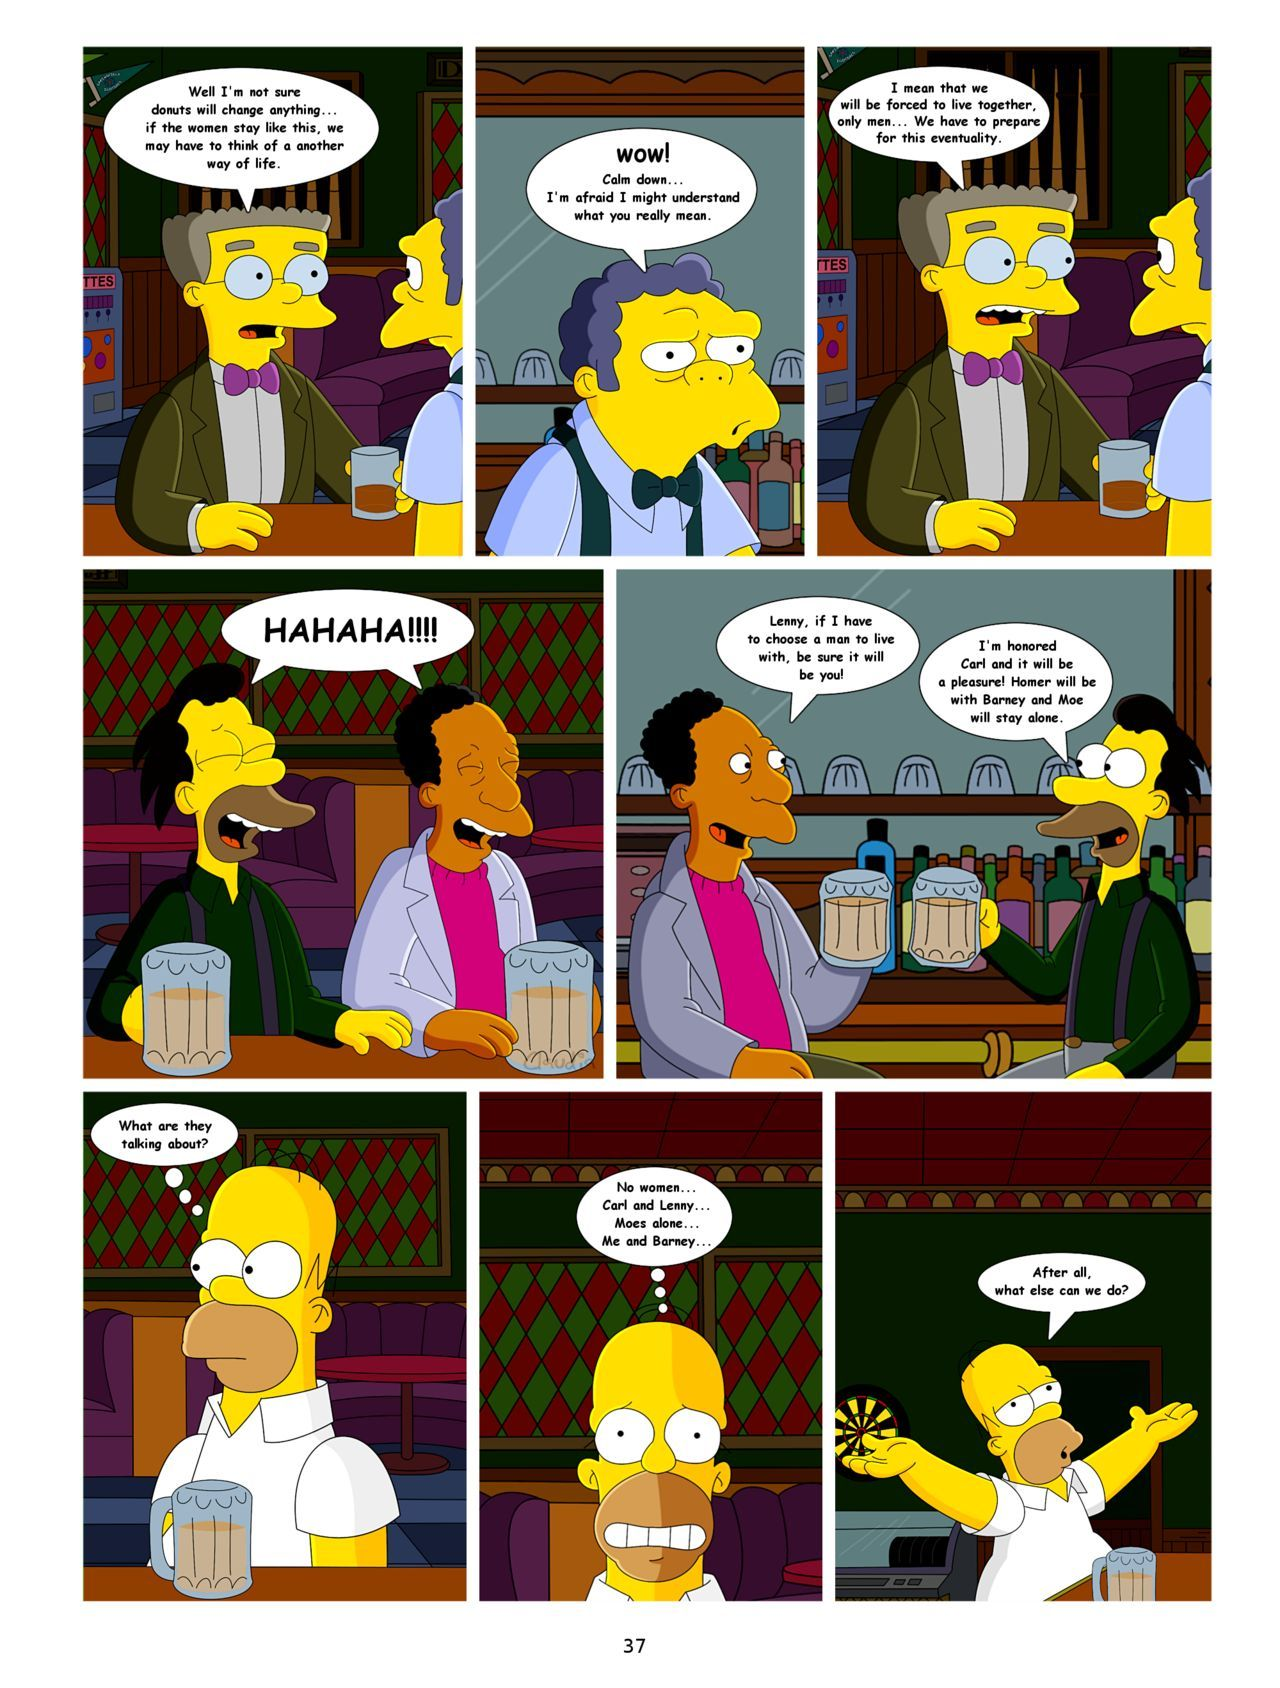 Barney Simpson Porn the simpsons sex comixs - conquest of springfield 2 - porn